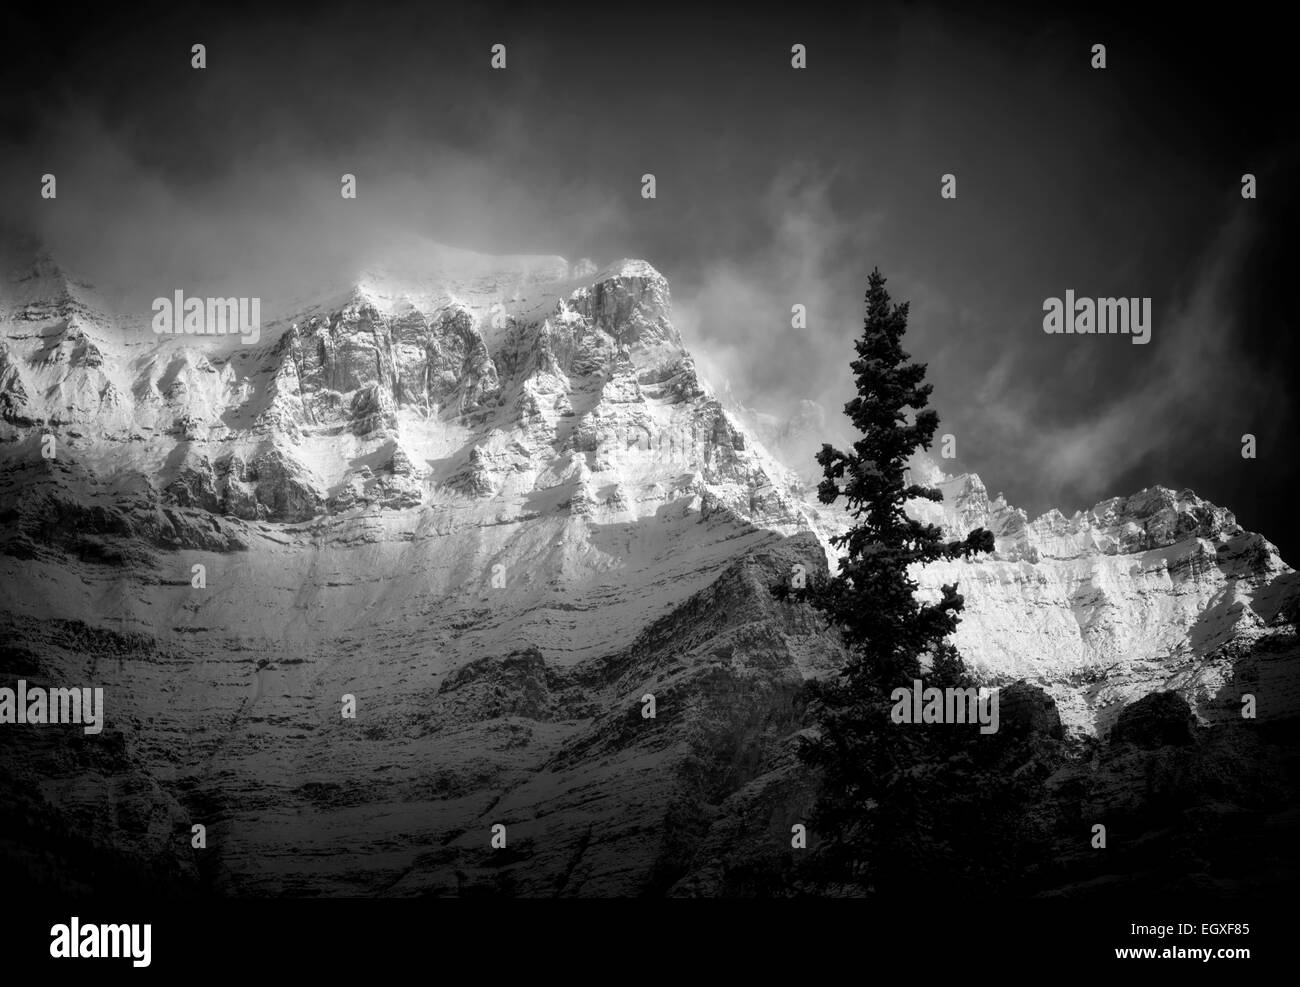 First light on mountain, surrounding Moraine lake with fresh snow. Banff National Park, Alberta, Canada - Stock Image